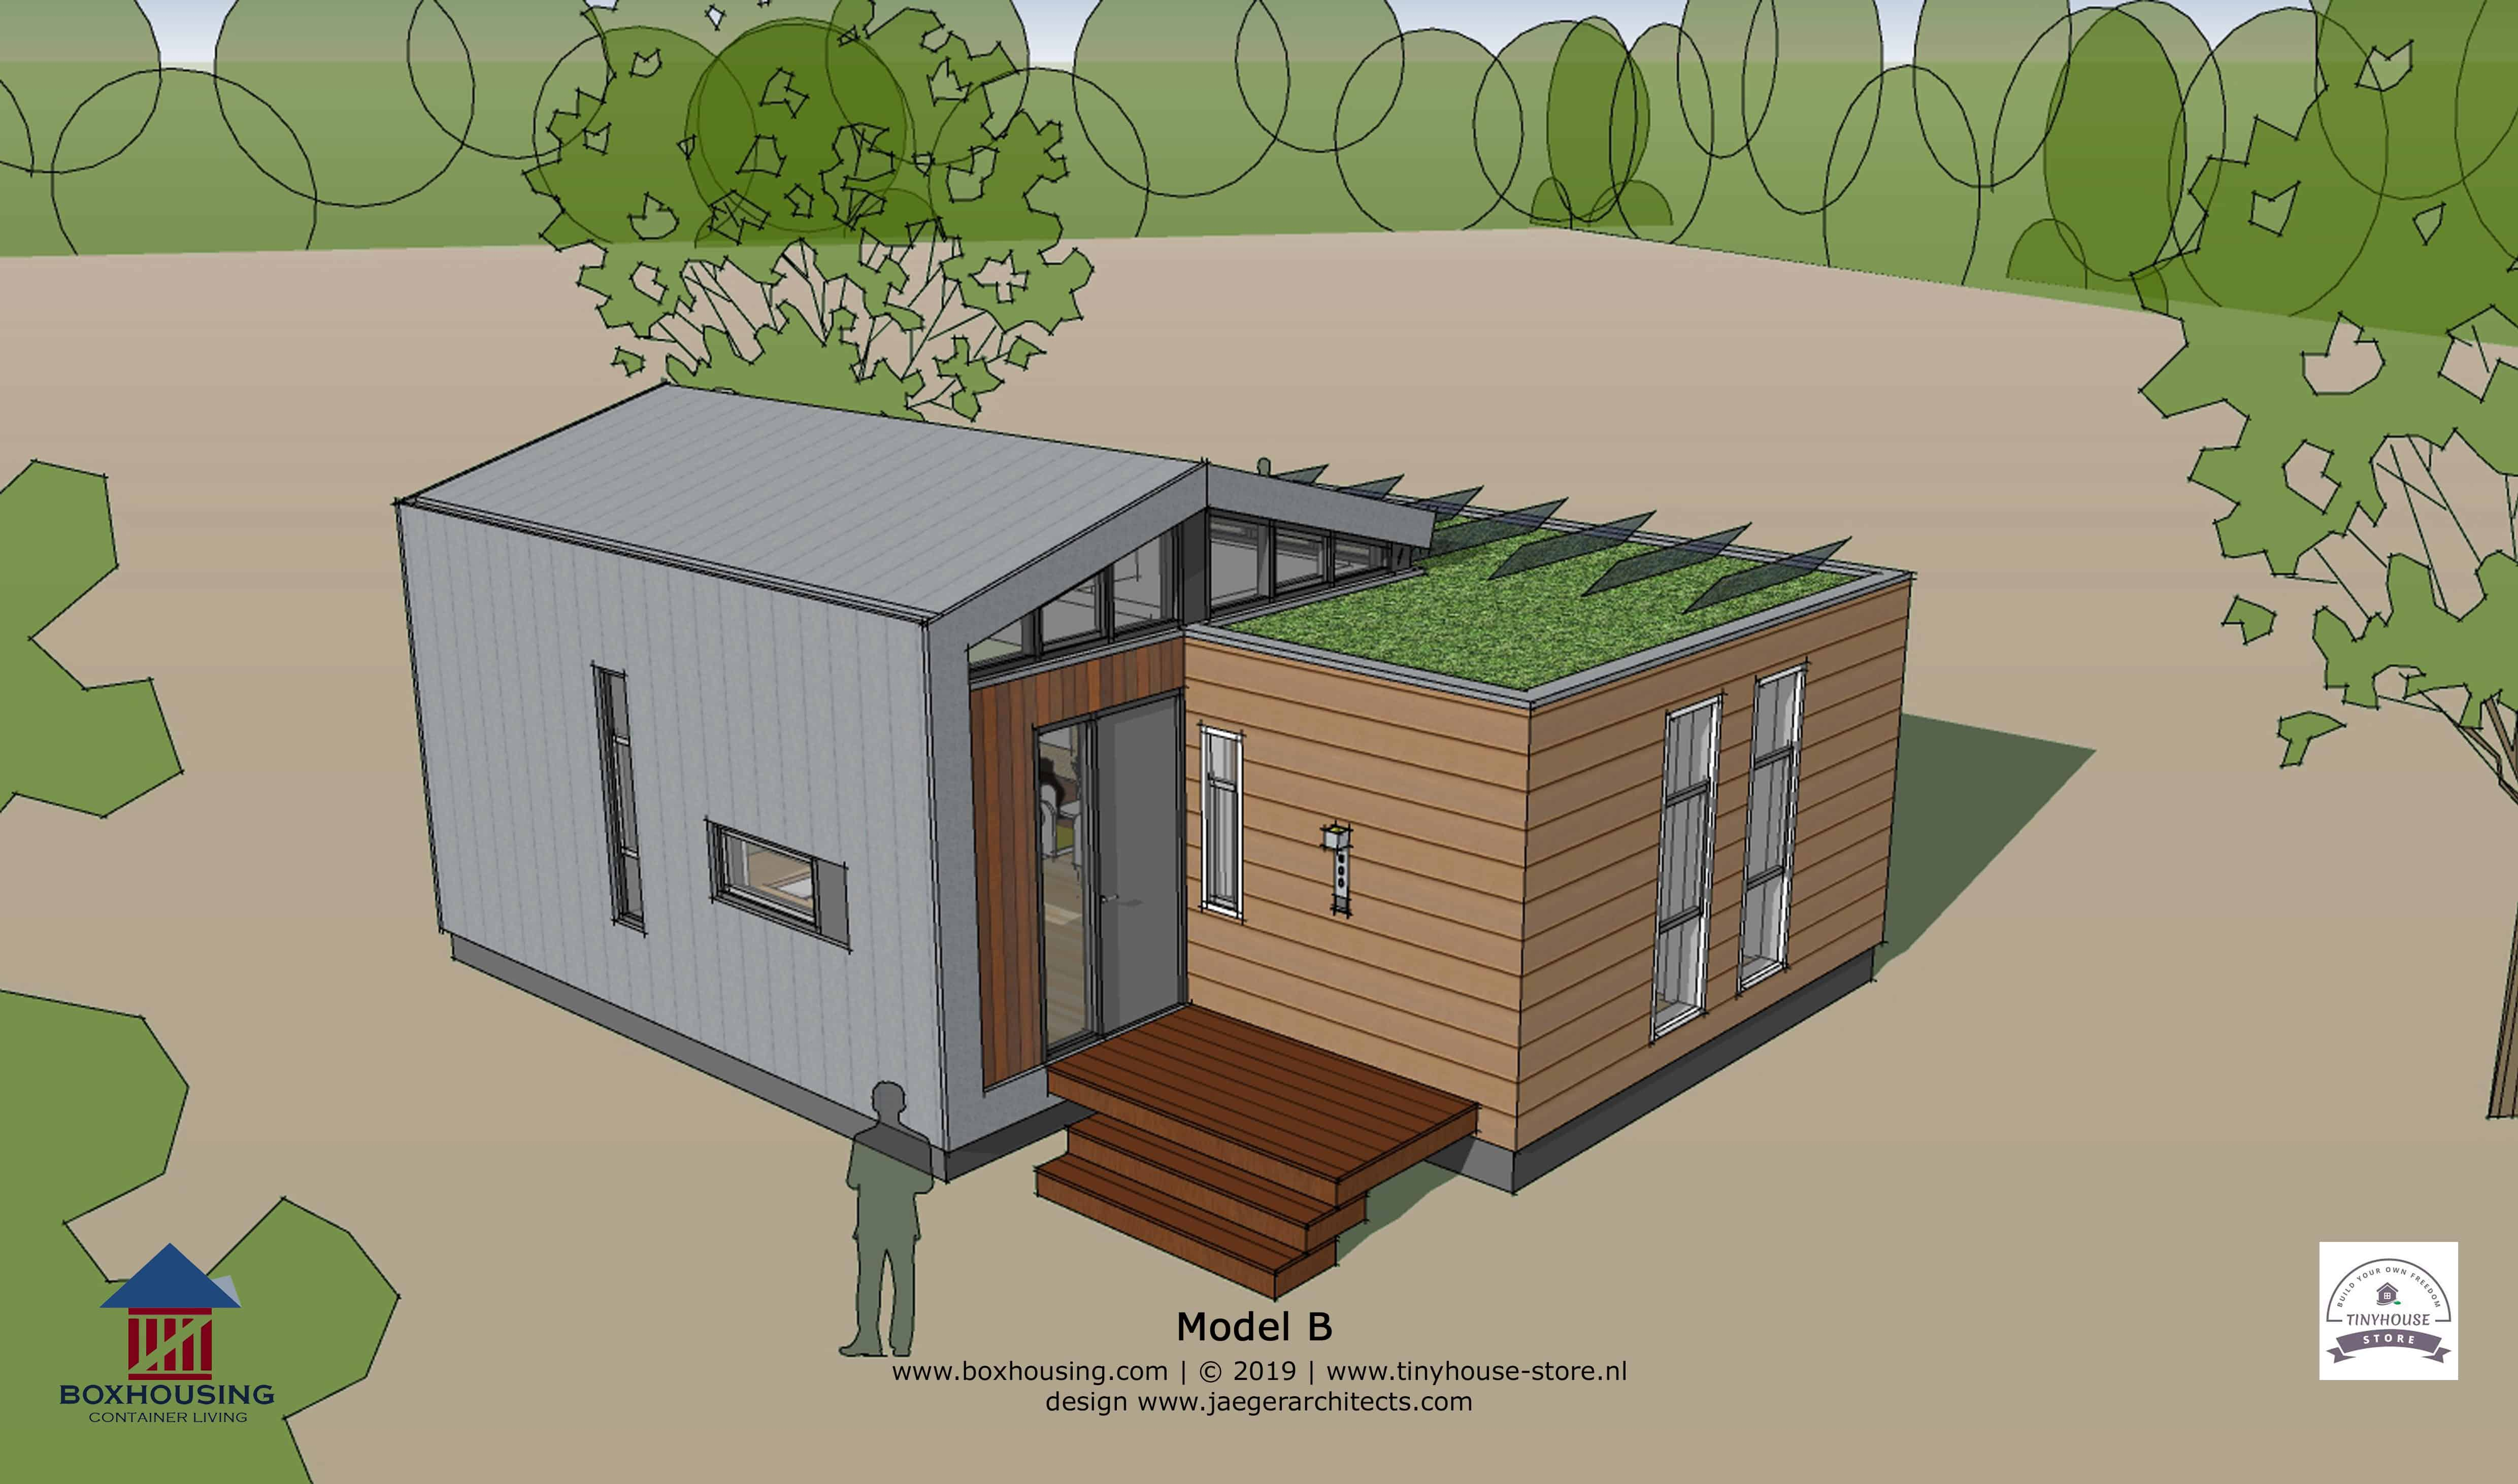 Super Containerwoning Tiny Villa (45m2) | Tinyhouse-store.nl NO-49